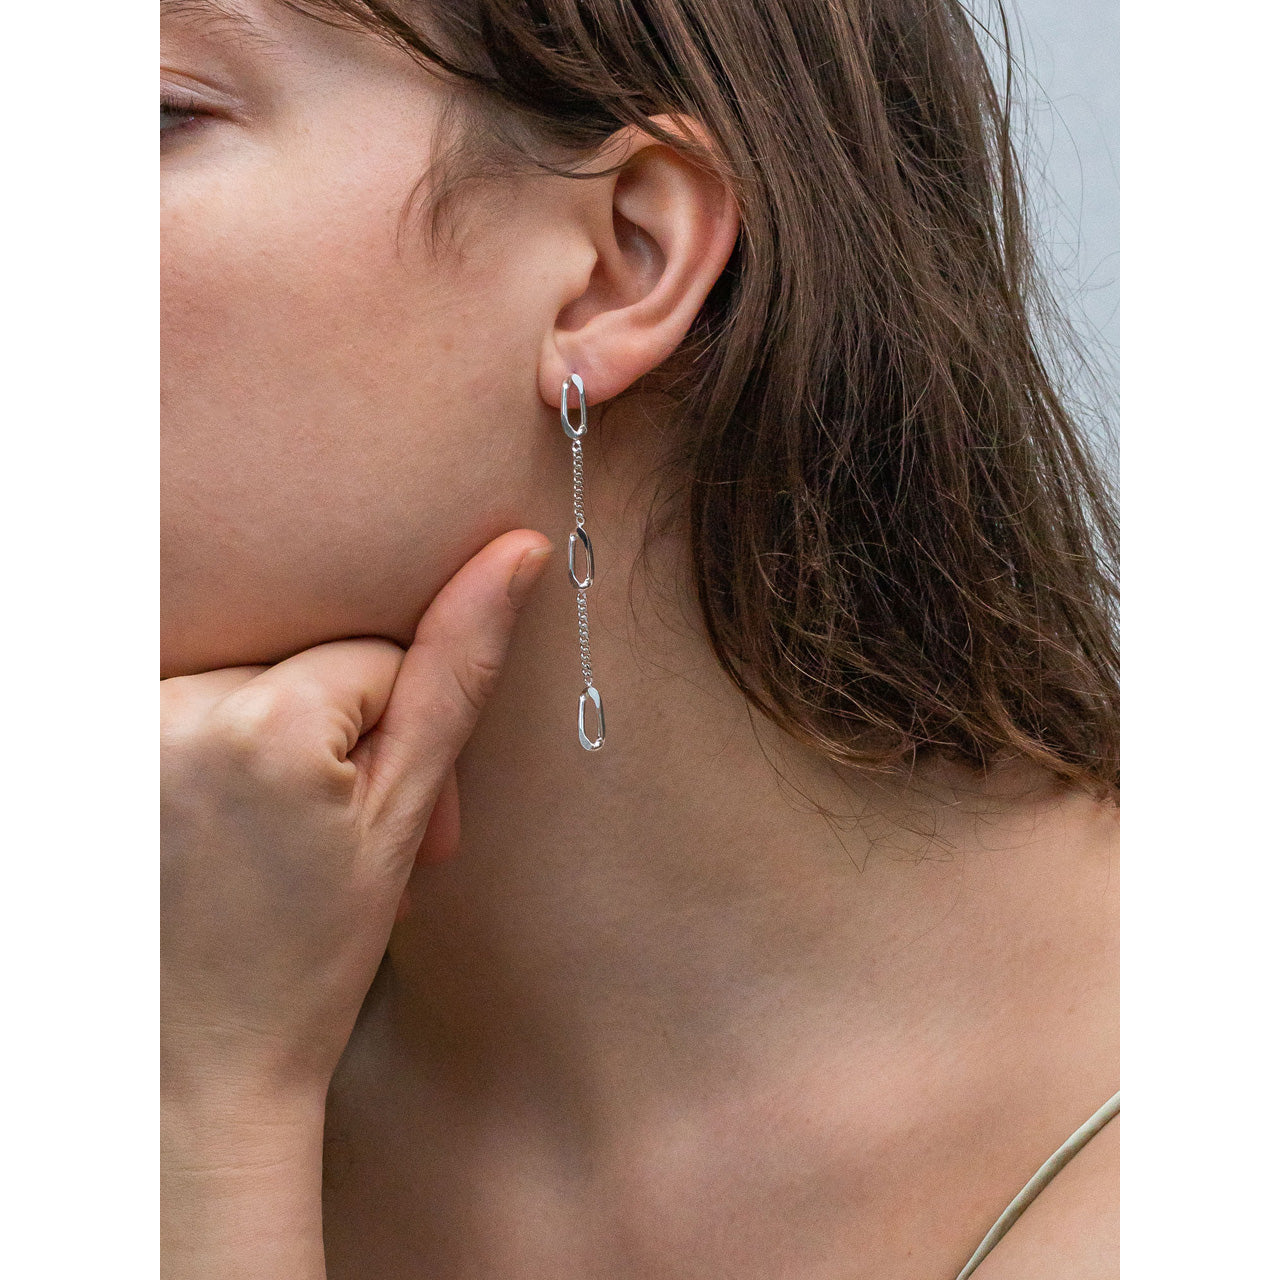 elegant long chain earrings